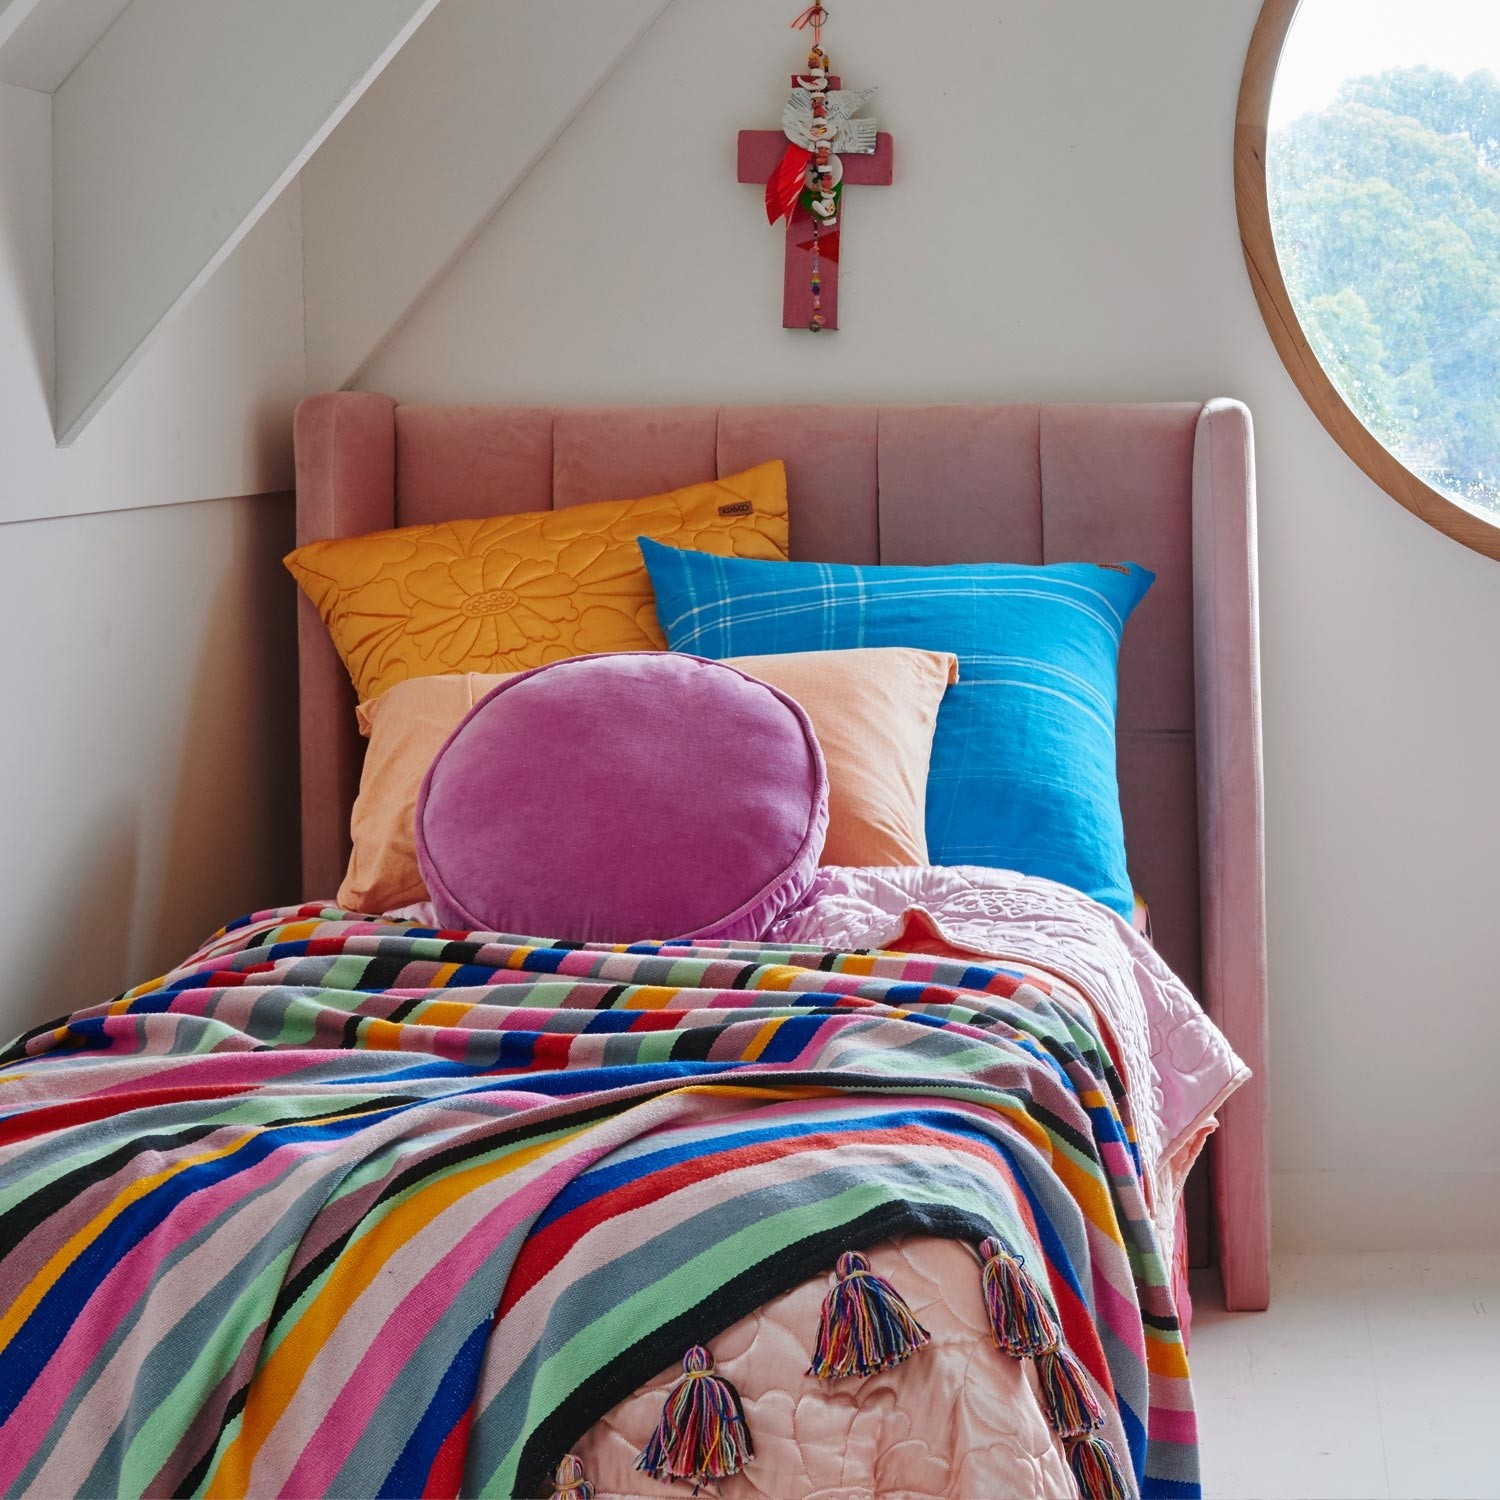 kip_co-aw18-magical-kingdom-quilted-comforter-bedspread_2